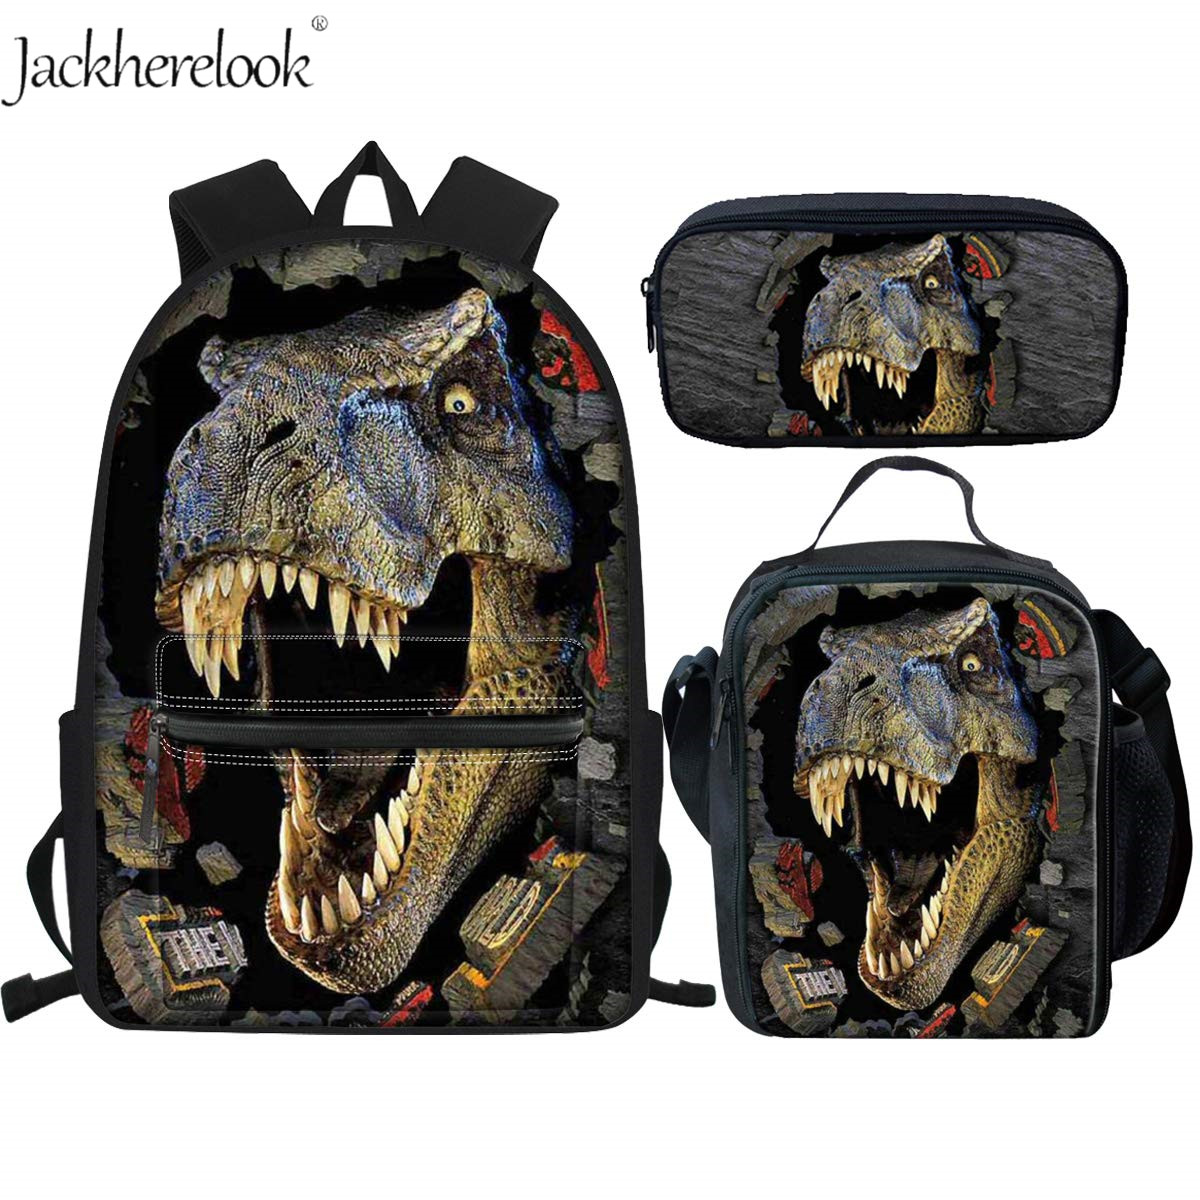 Jackherelook Cool T-rex Dinosaur School Bags Set 3Pcs Large Canvas Backpack Teen Boys Students Book Bag With Lunch Box Pen Case